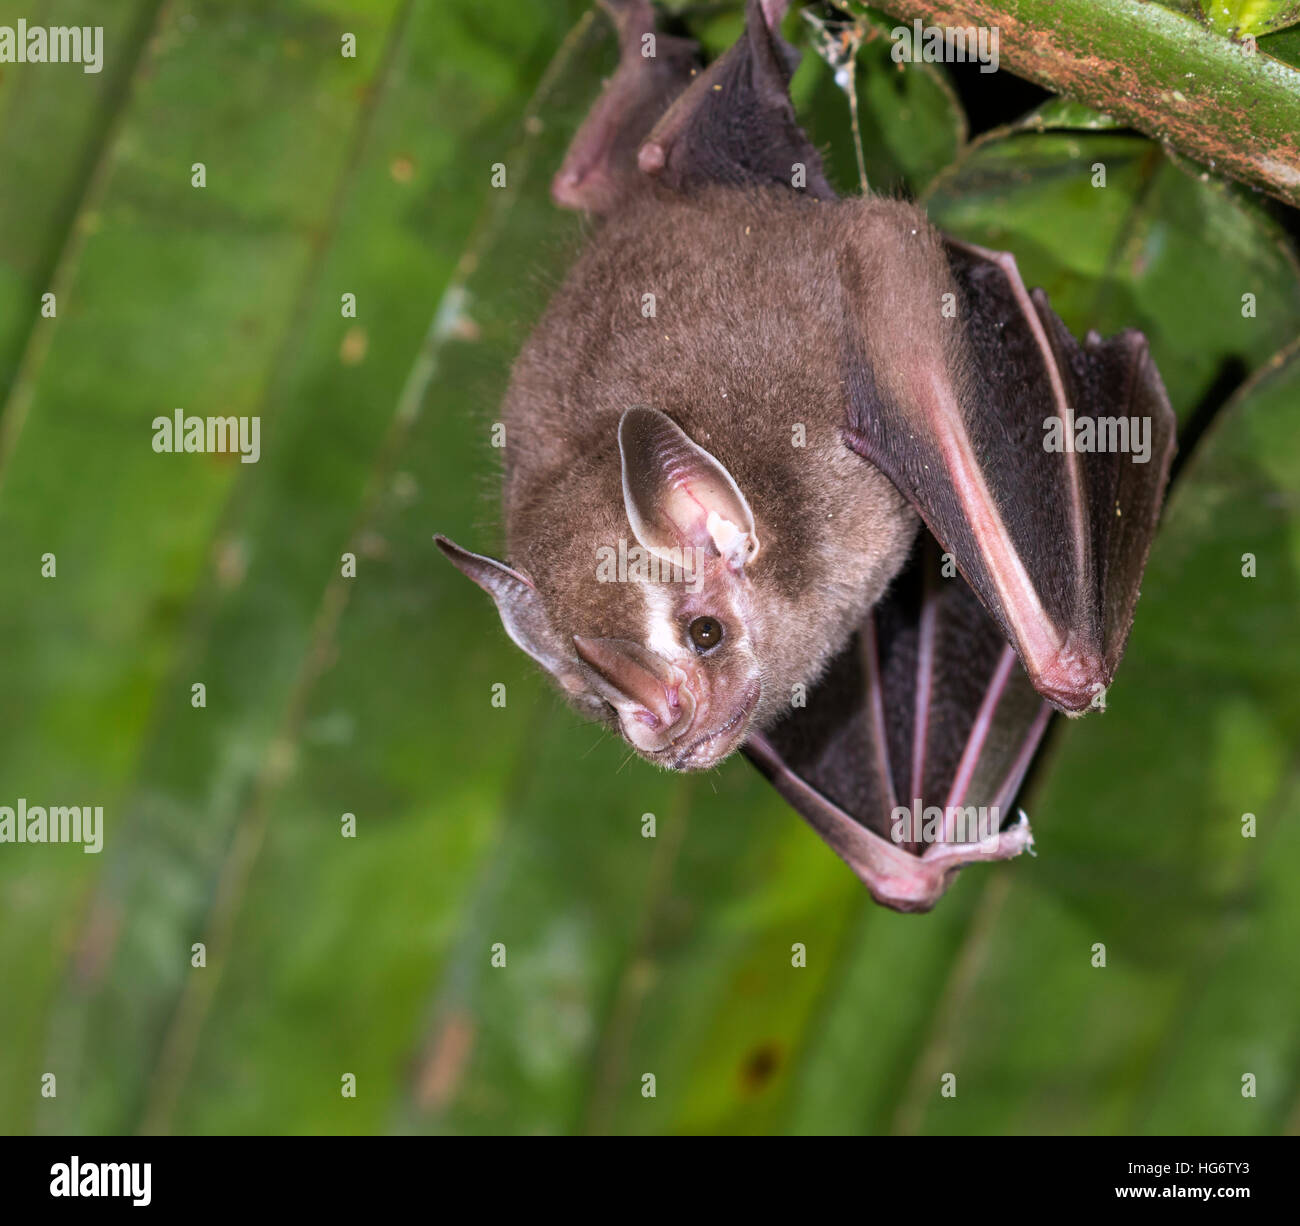 Pygmy fruit-eating bat (Dermanura phaeotis) roosting under palm leaf in rainforest, Belize, Central America - Stock Image